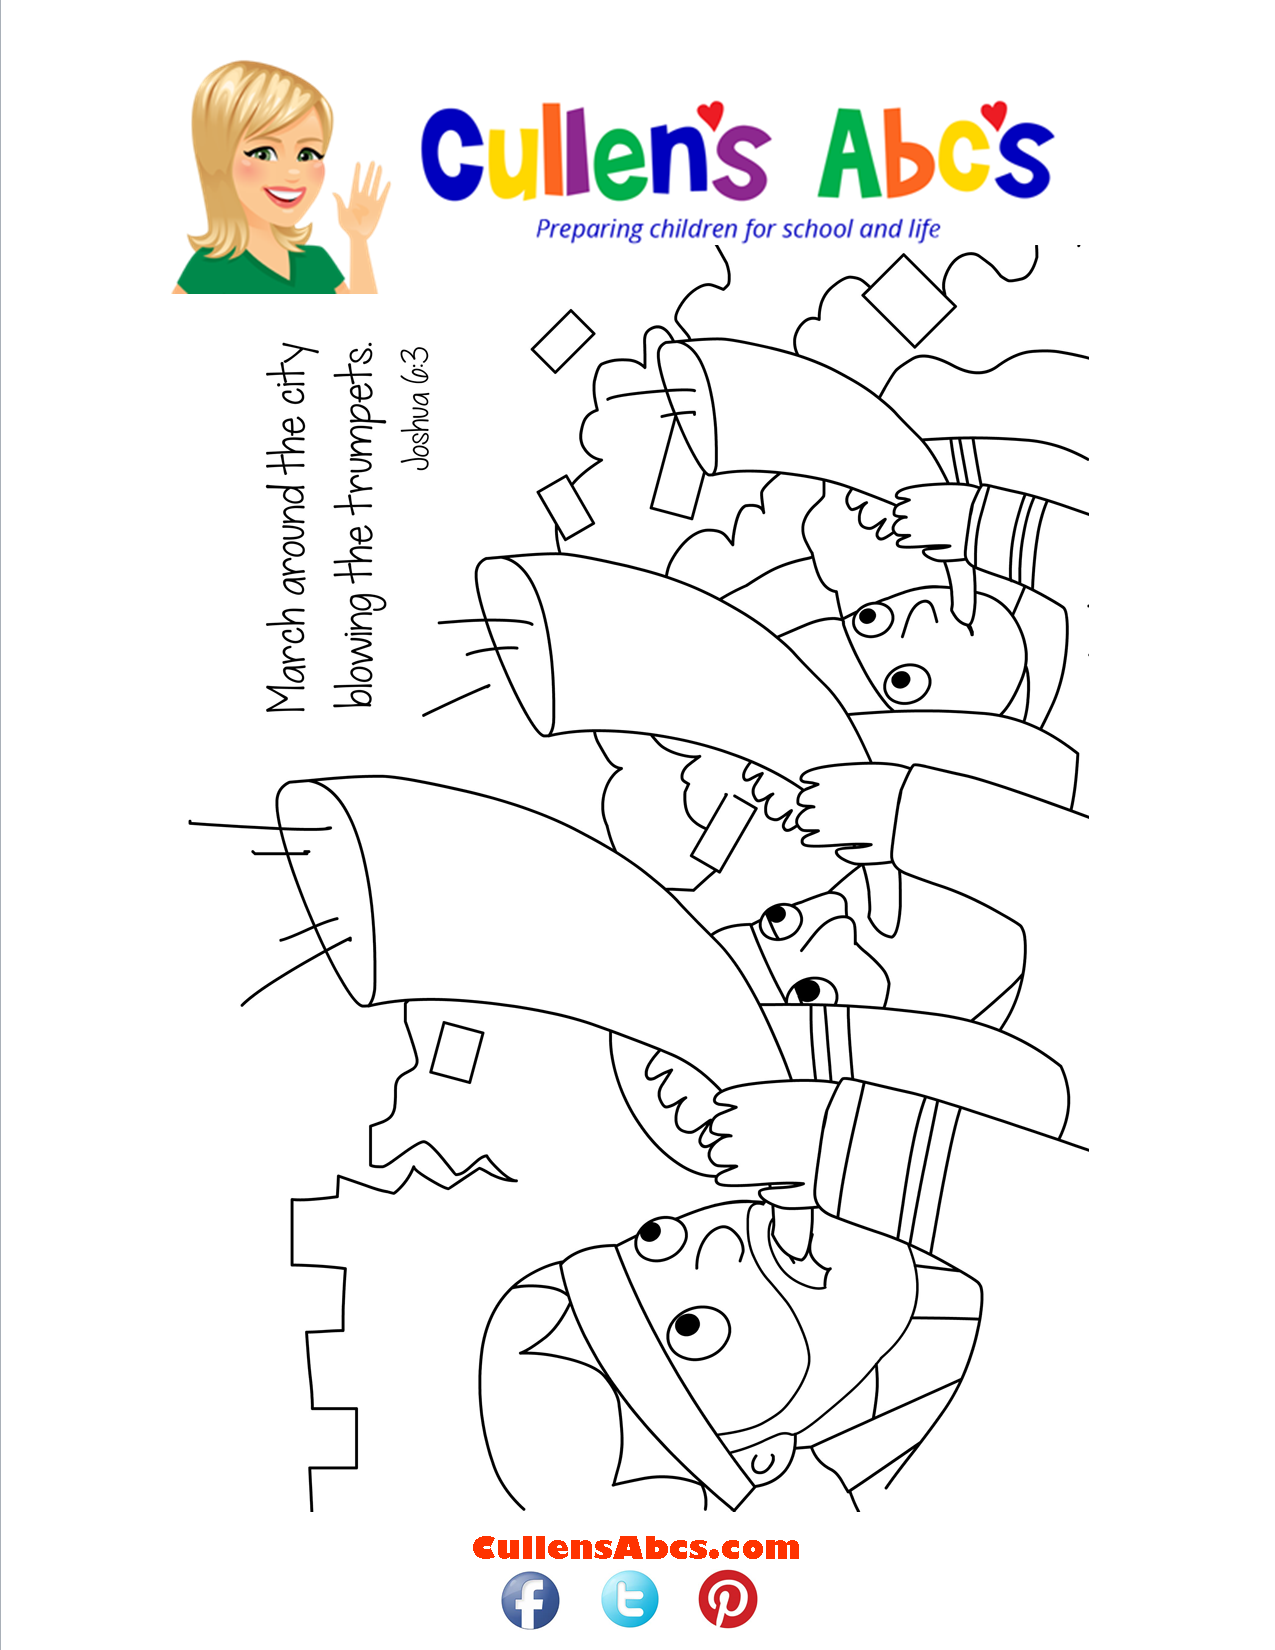 Bible Memory Verse Coloring Page | The Battle of Jericho | Online ...